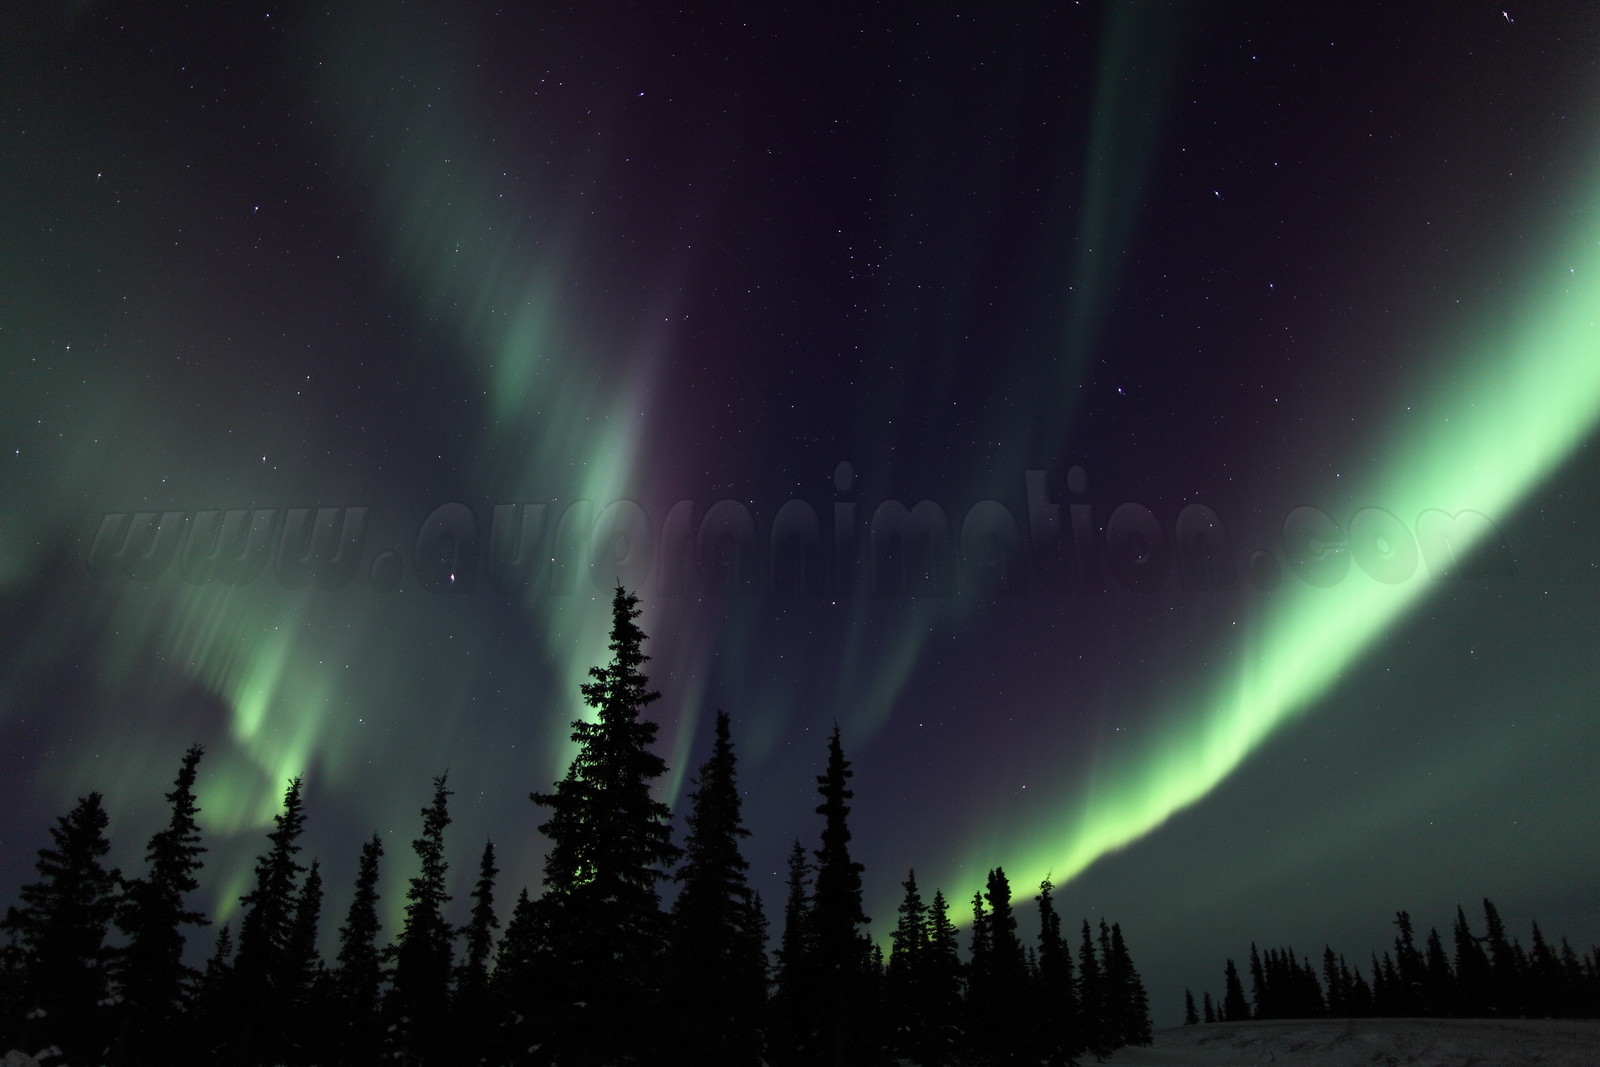 Northern Lights at the Arctic Circle in Alaska on March 16, 2013 - 11:14 PM<br /> <br /> Canon 5D MKII with EF EF 50mm f/1.2L